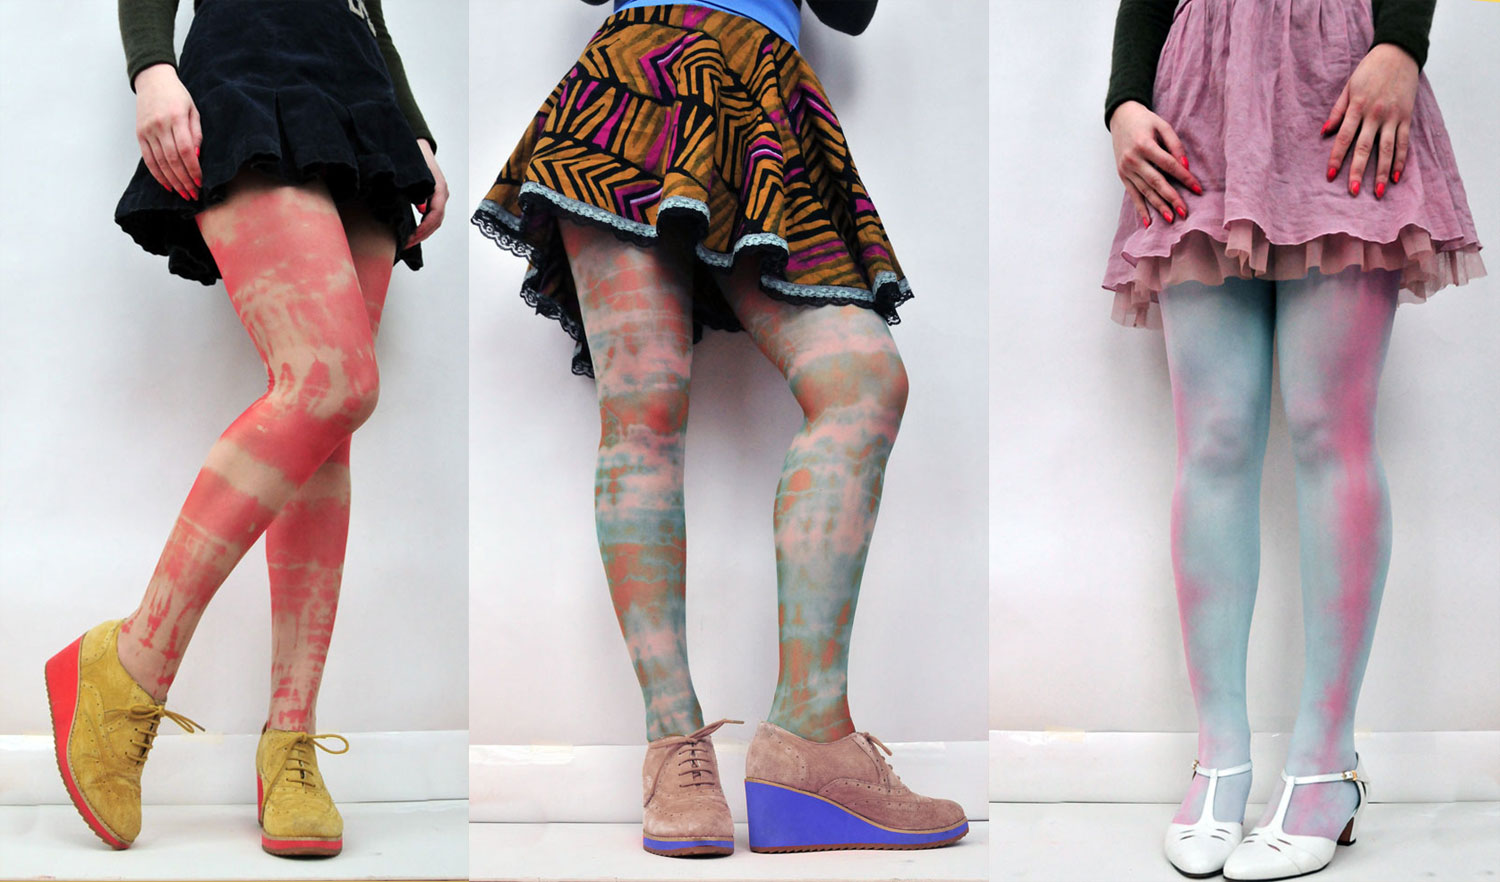 Of pantyhose might make, excessive bleeding during sex